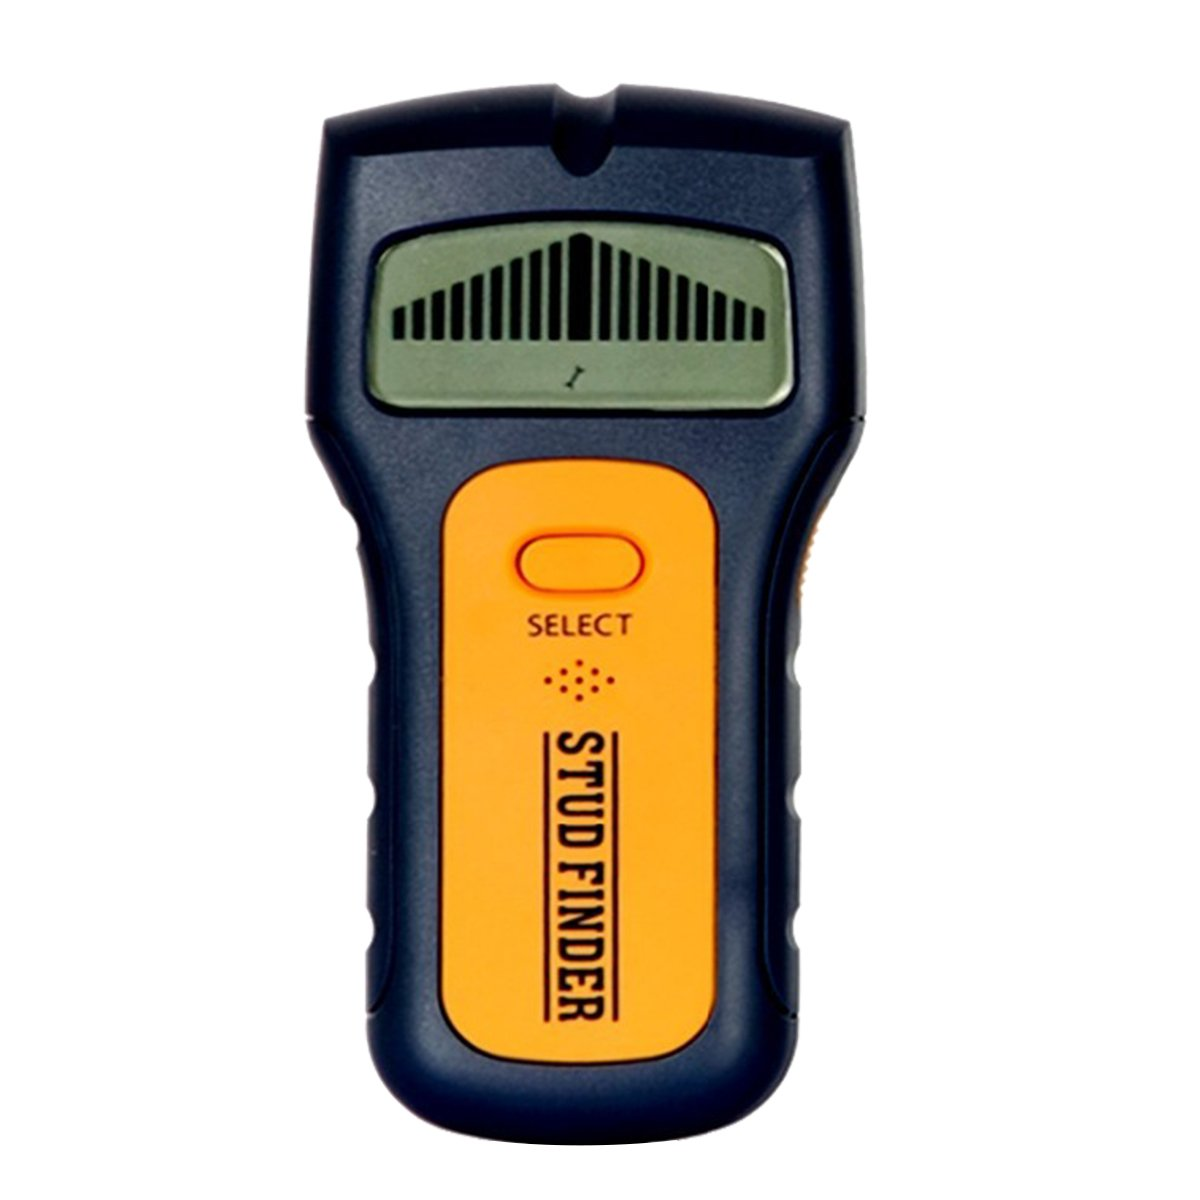 Mochiglory 3 in 1 Stud Finder Stud Sensor Digital Multi-Scanner for Wall Studs Metal Detection and AC Live Wire